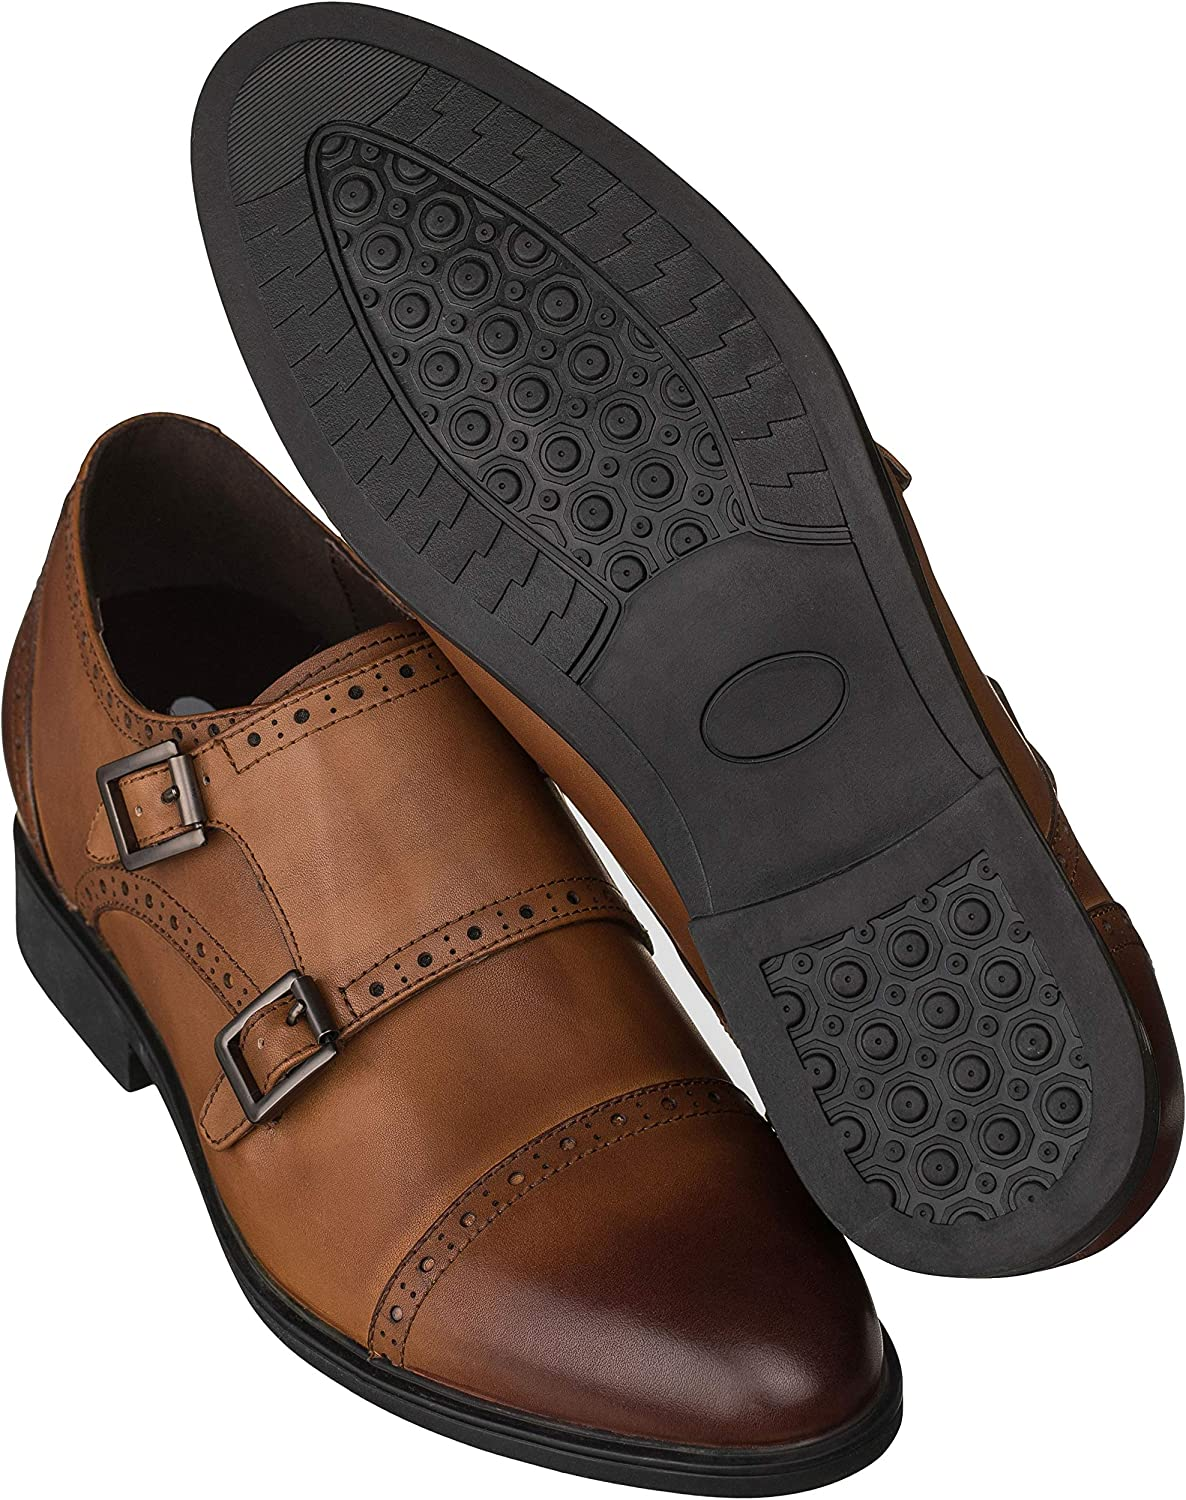 CALTO Men's Invisible Height Increasing Elevator Shoes - Leather Slip-on Ultra Lightweight Dress Loafers - 2.8 Inches Taller